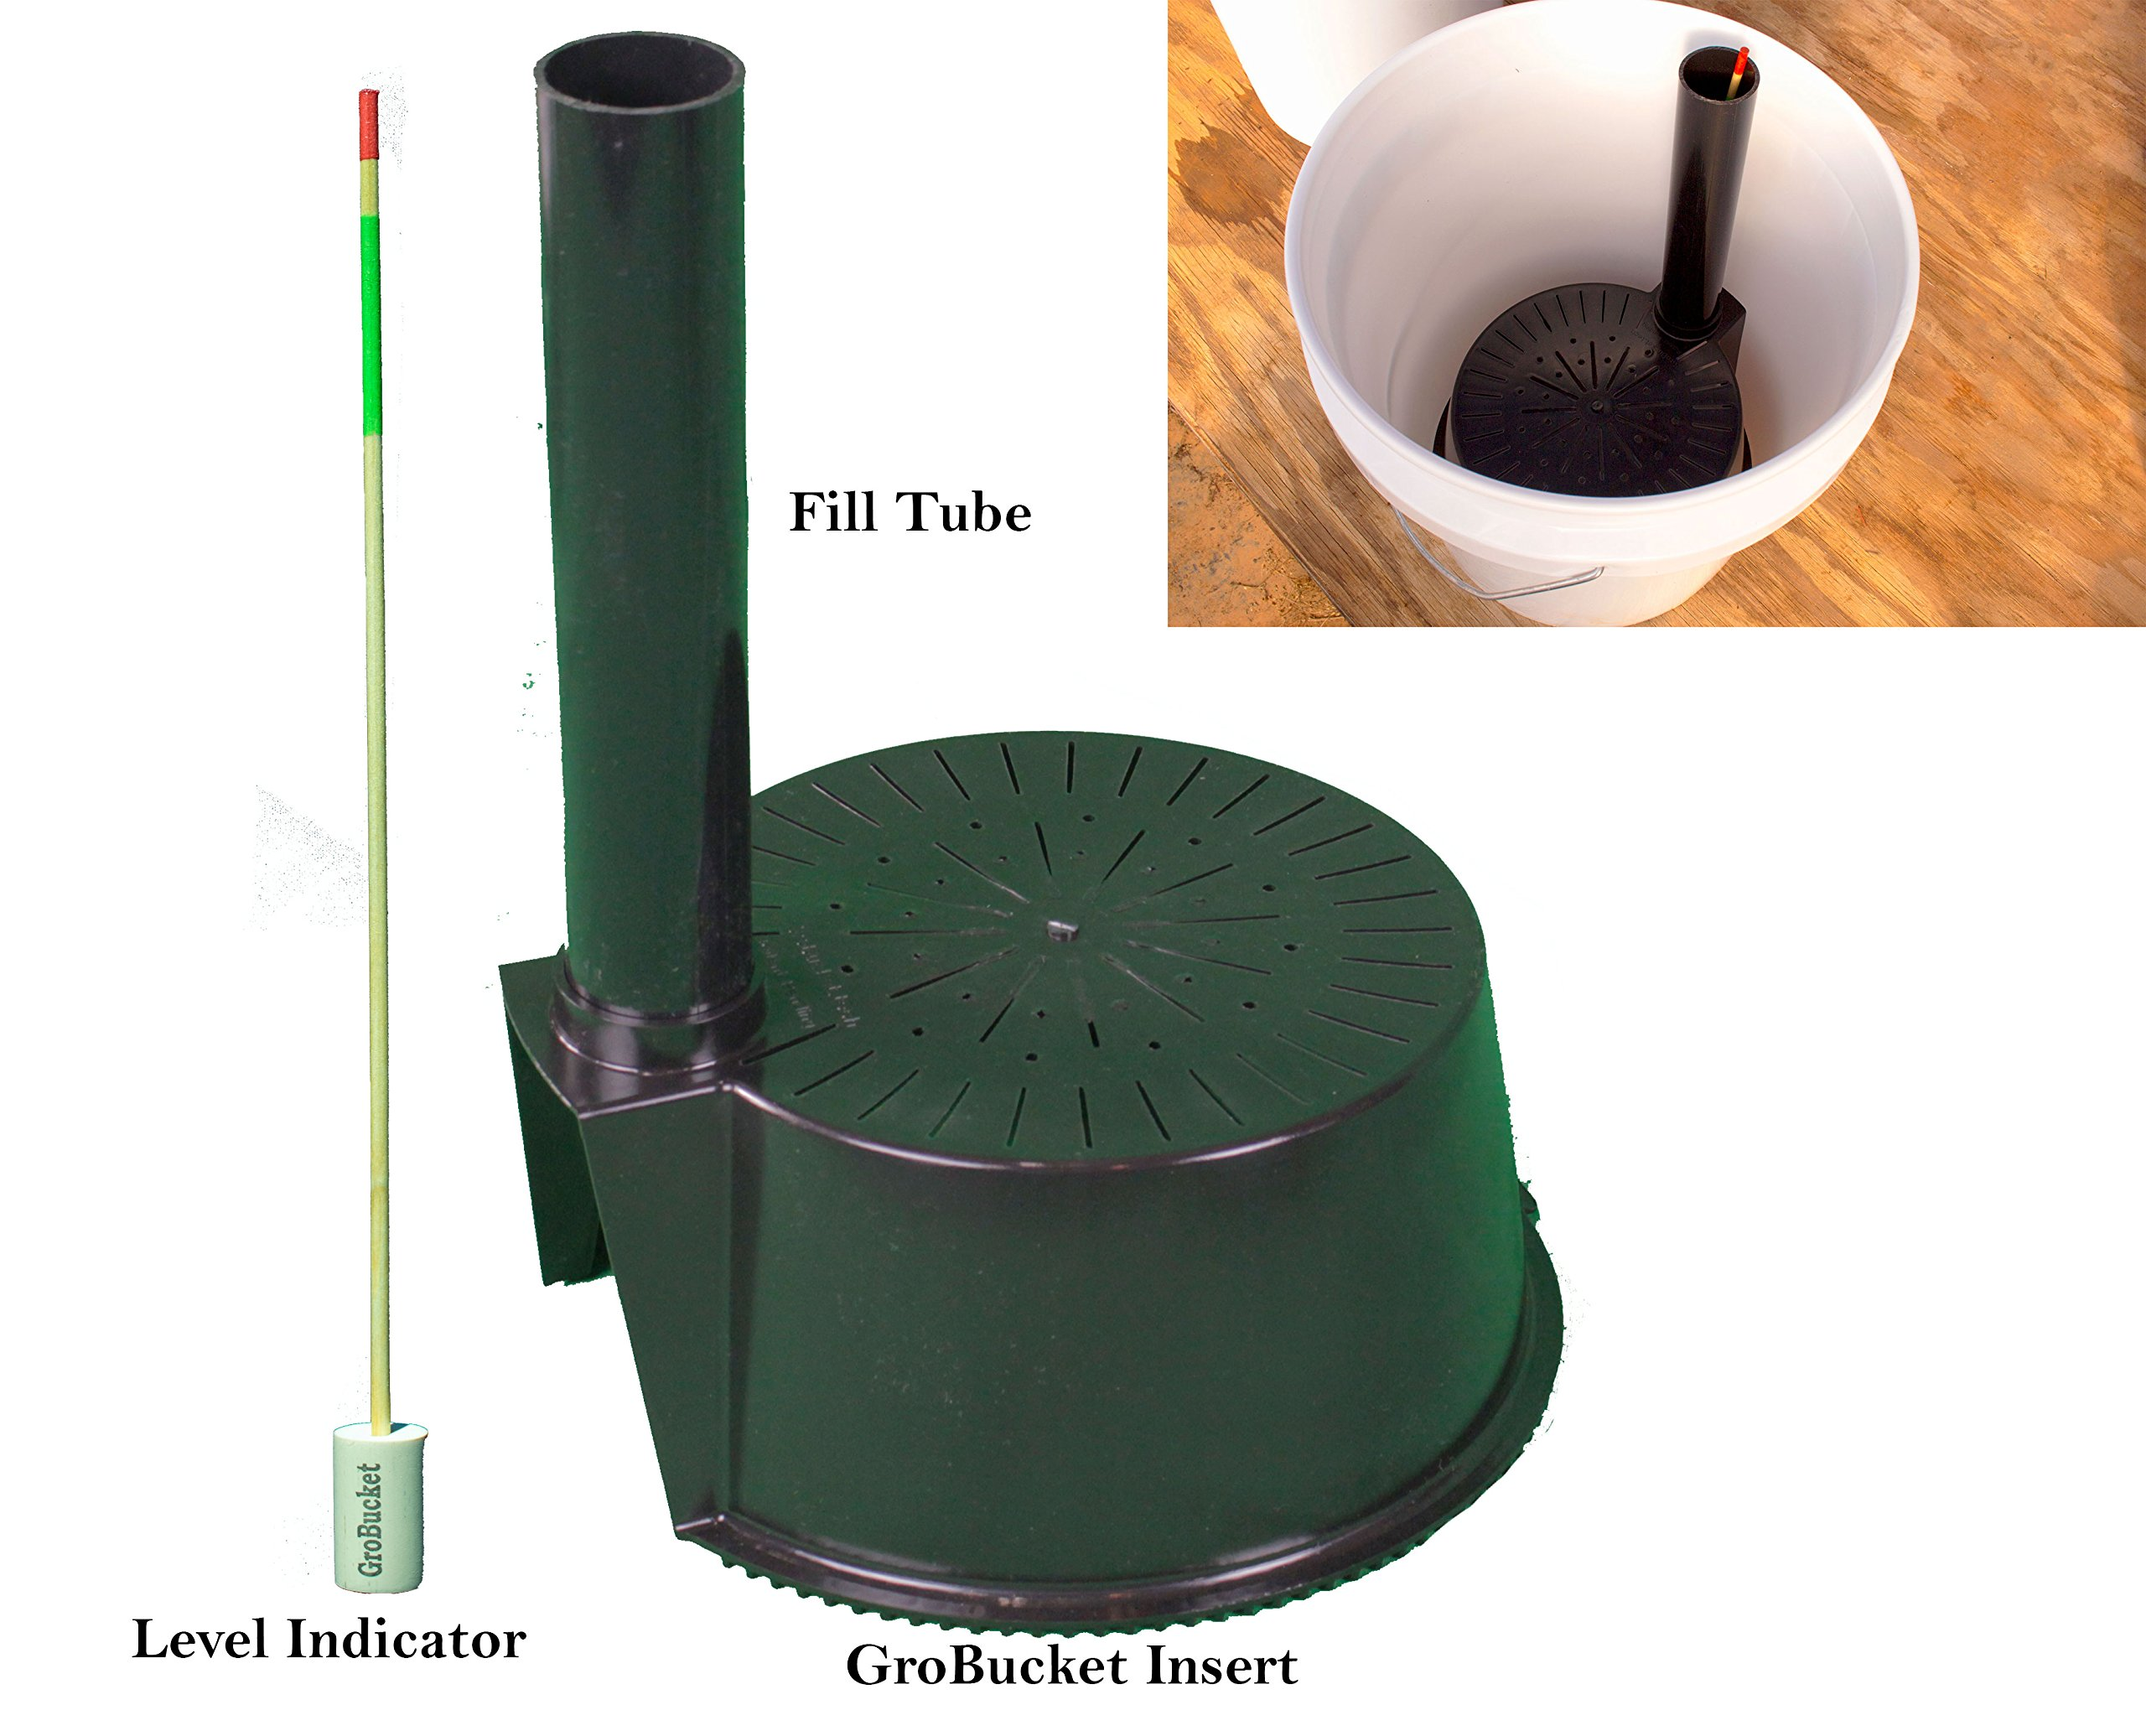 GroBucket Garden Kit (10PK) Self Watering sub-irrigated planter insert. Turn any bucket into a Self Watering Container Garden. Create an indoor or outdoor, space saving and portable garden in minutes. by GroBucket